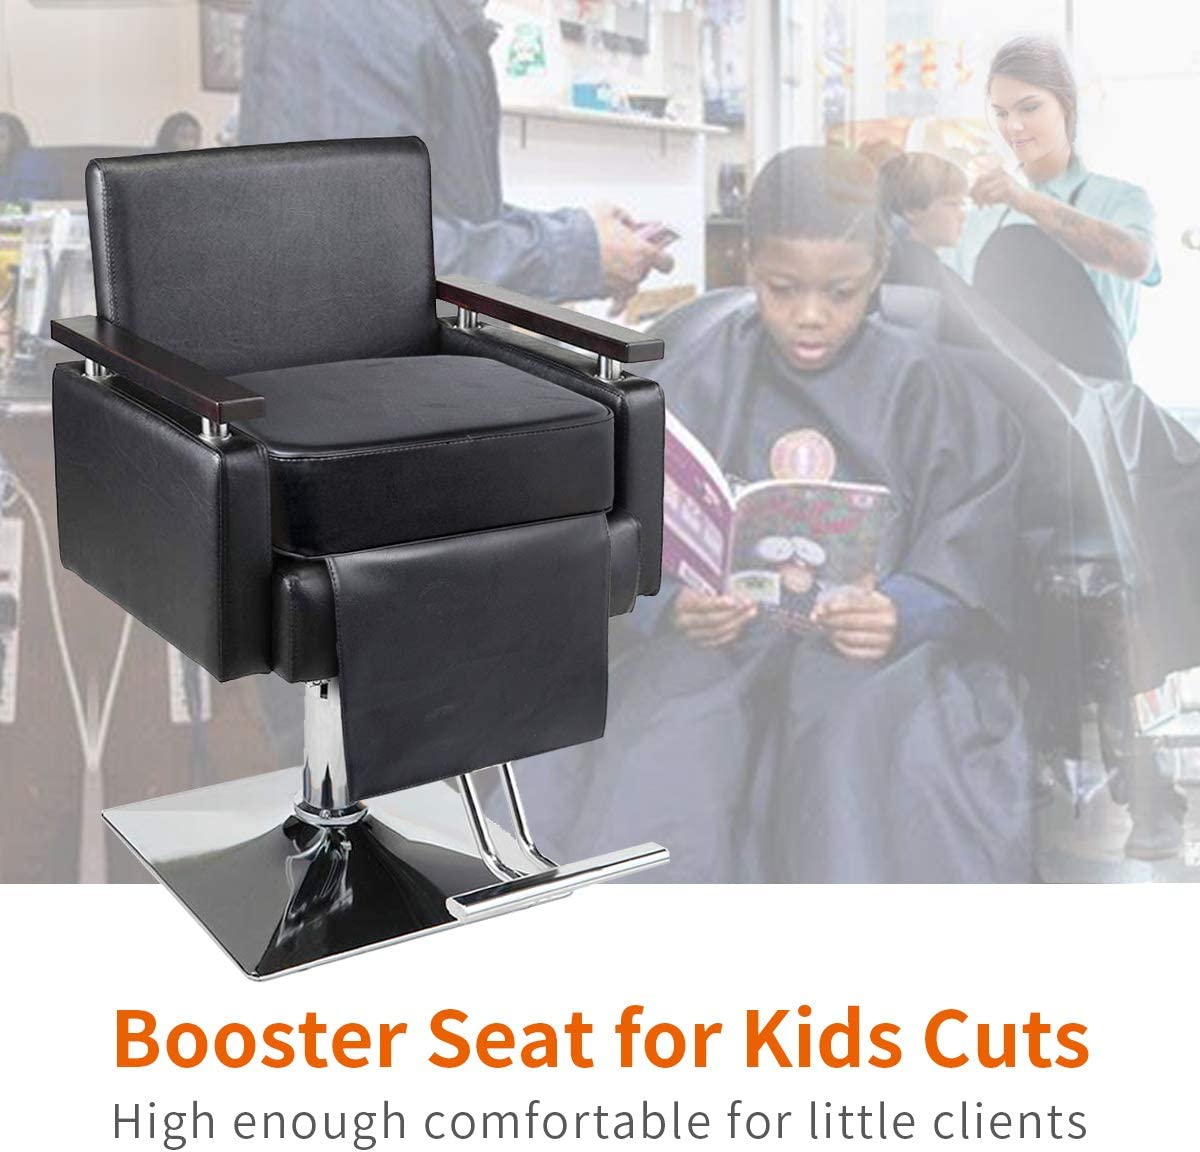 Rocktric Salon Booster Seat Cushion for Child Hair Cutting Barber Beauty Salon Spa Equipment Black: Kitchen & Dining